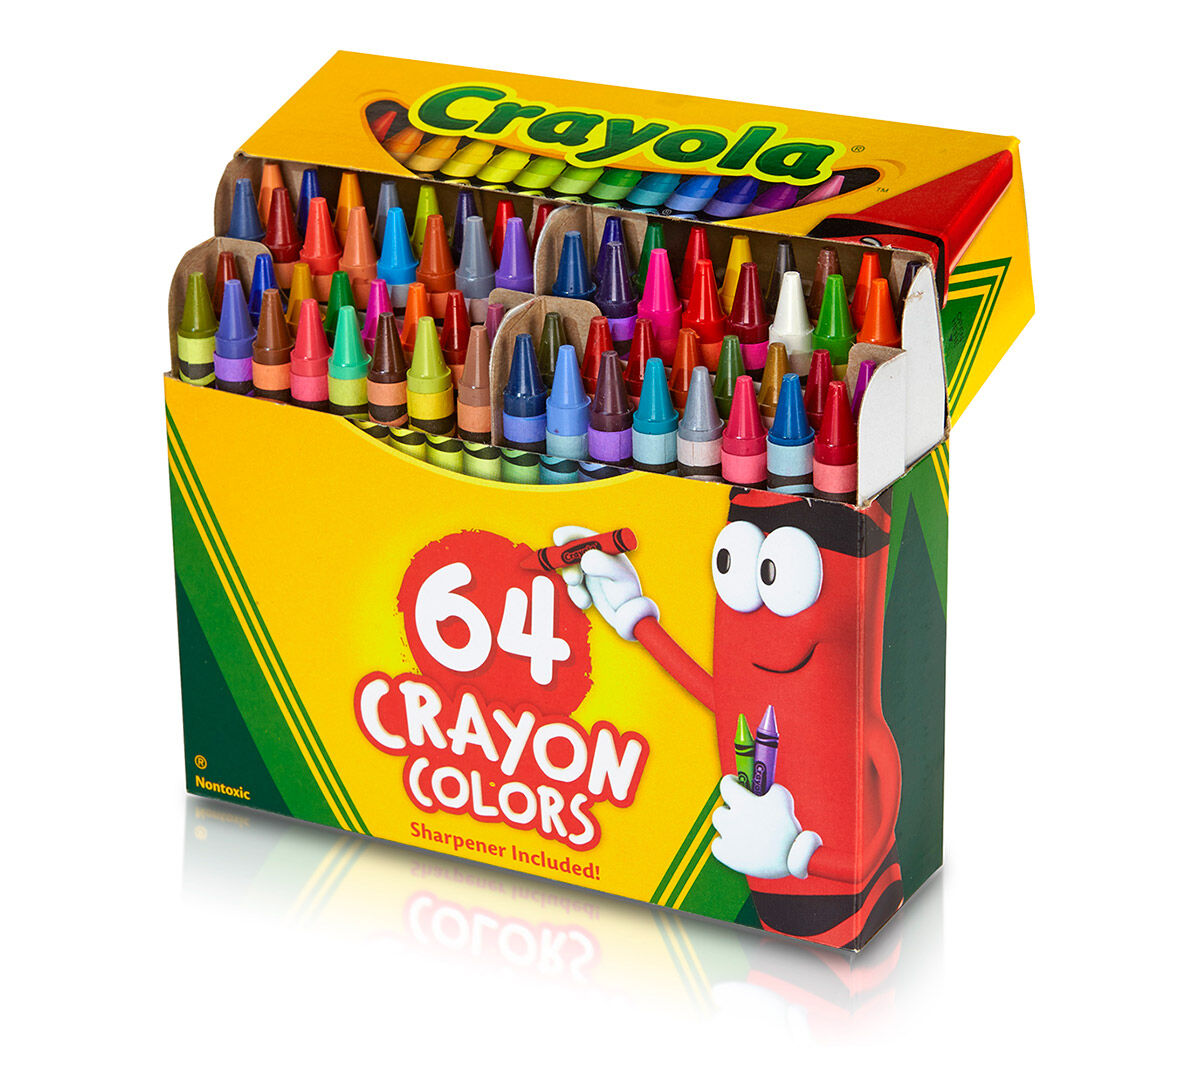 Crayola Crayons - Shop Crayon Packs & Boxes | Crayola